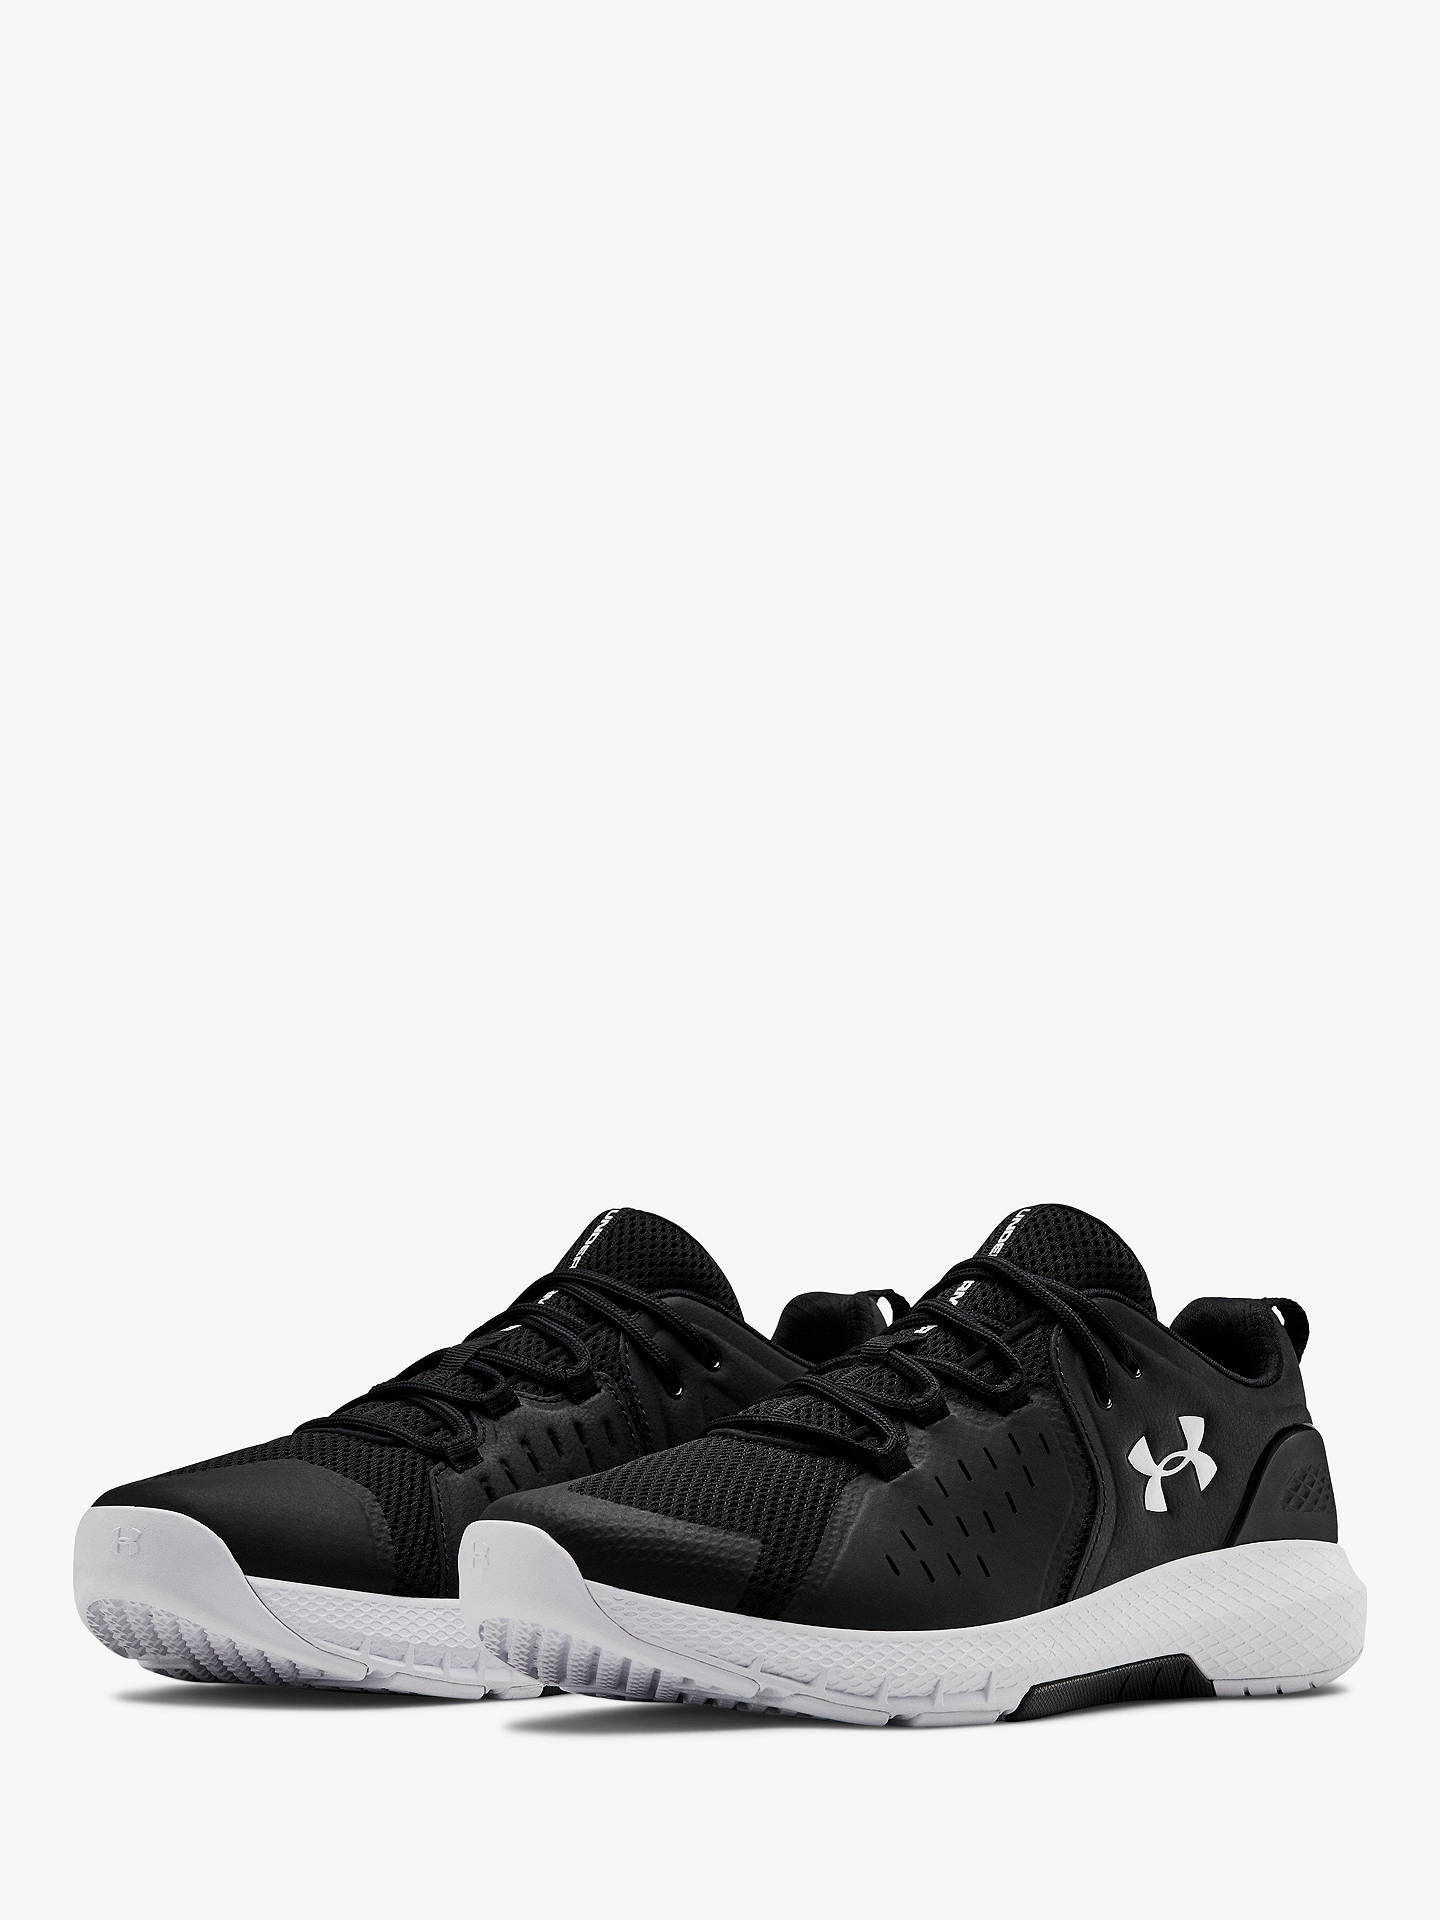 sale retailer c839c 1fa55 Under Armour Charged Commit 2 Men's Cross Trainers, Black/White